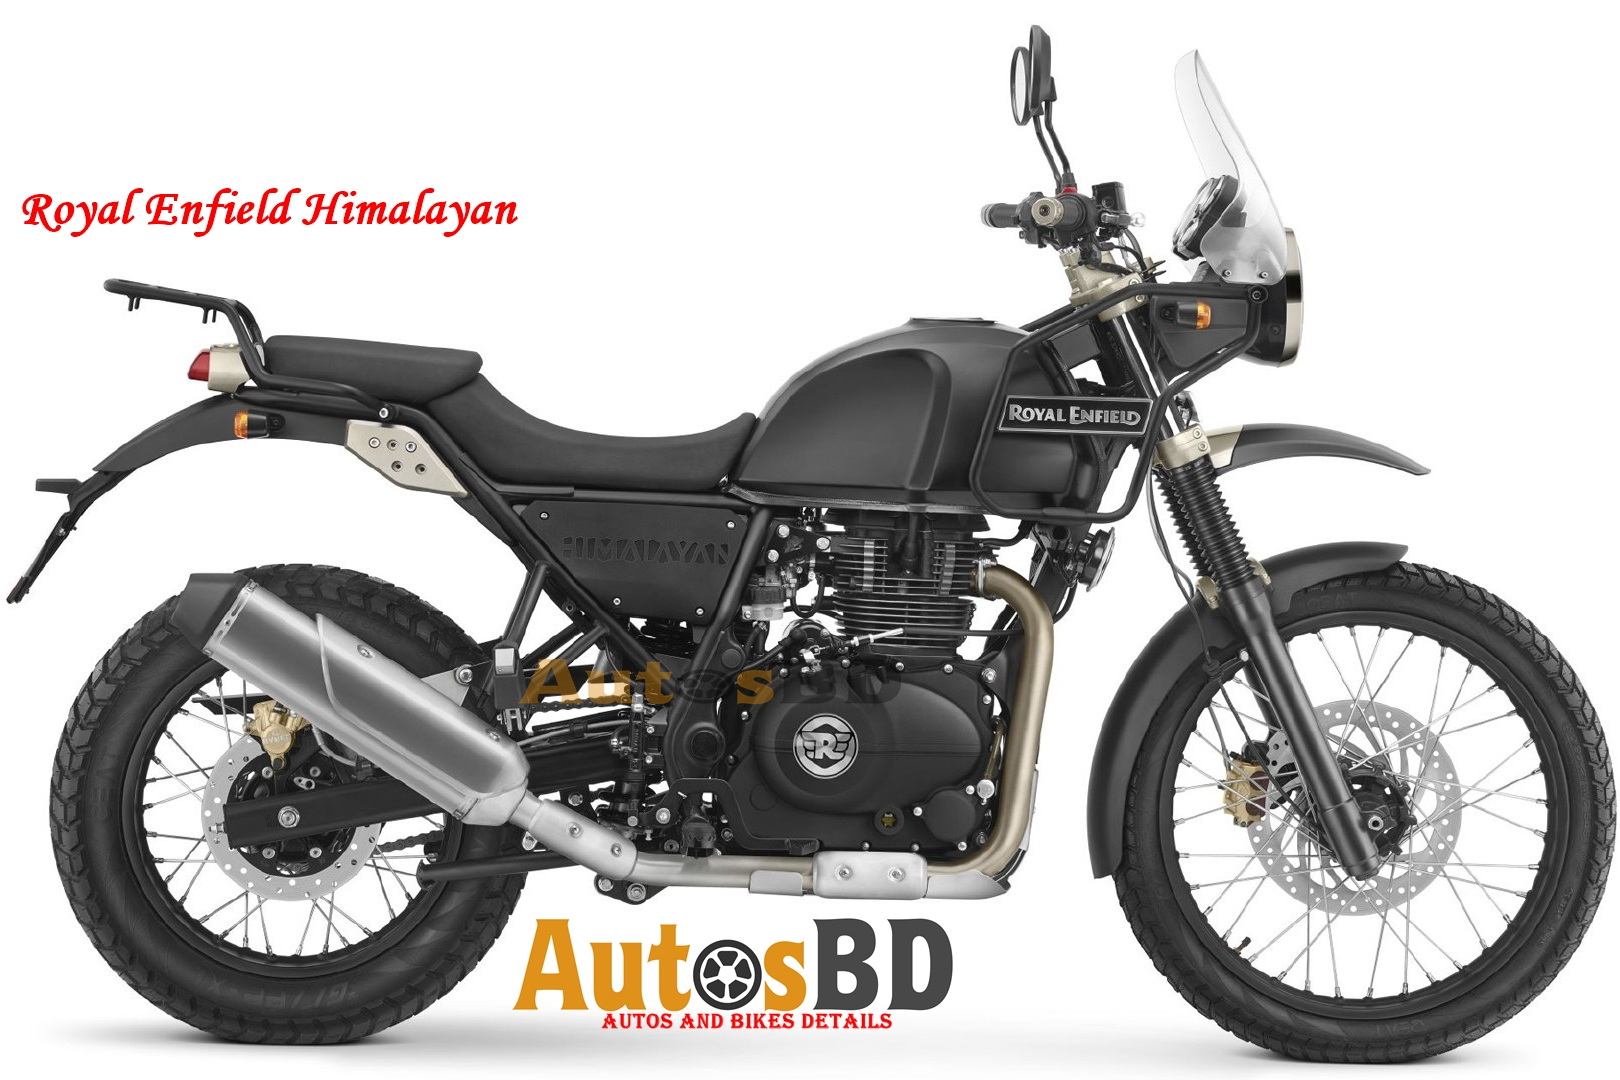 Royal Enfield Himalayan Price in India